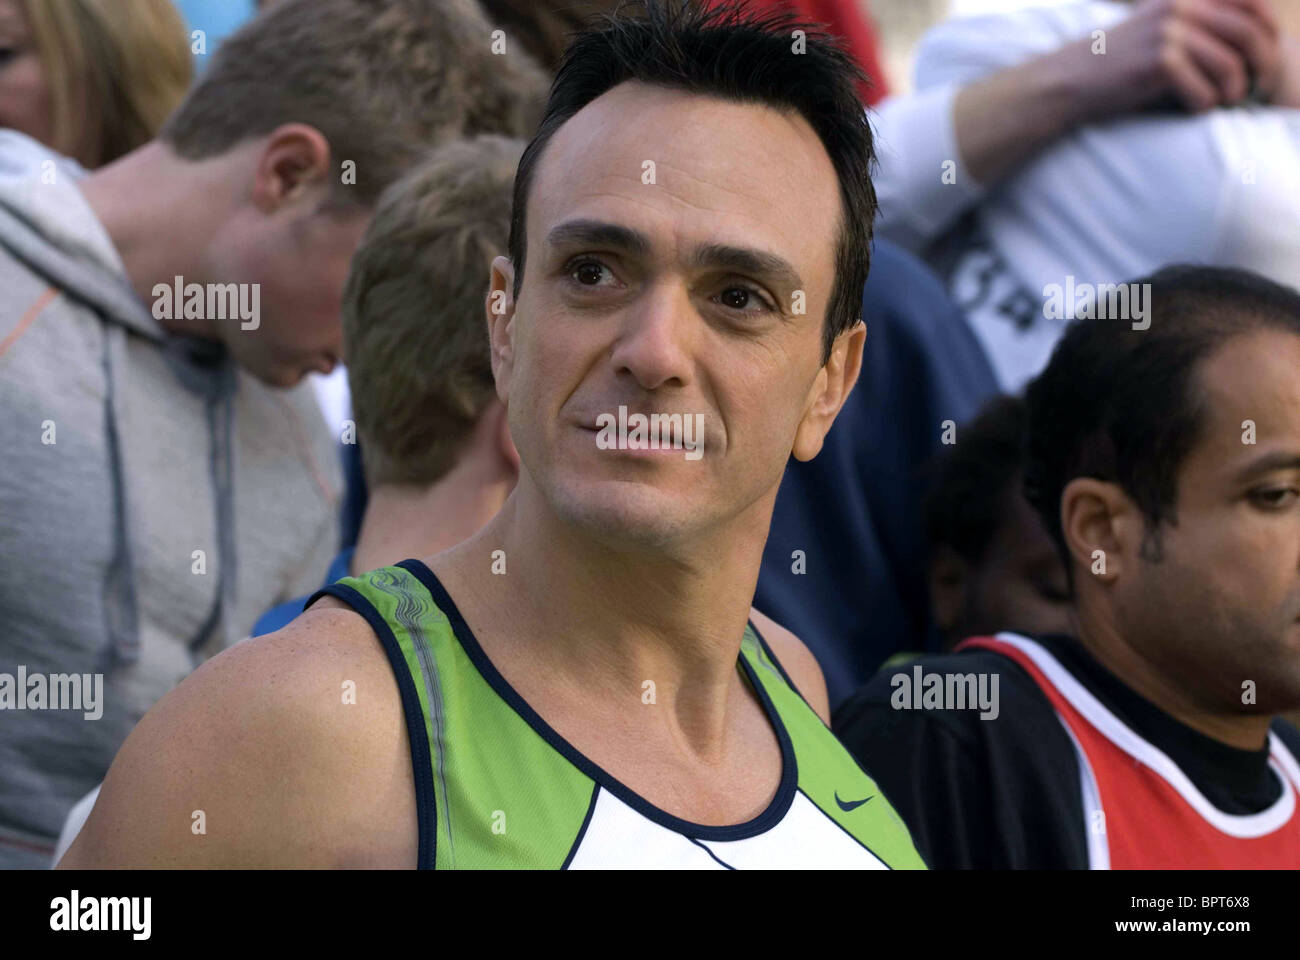 Hank Azaria Run Fat Boy Run Run Fat Boy Run 2007 Stock